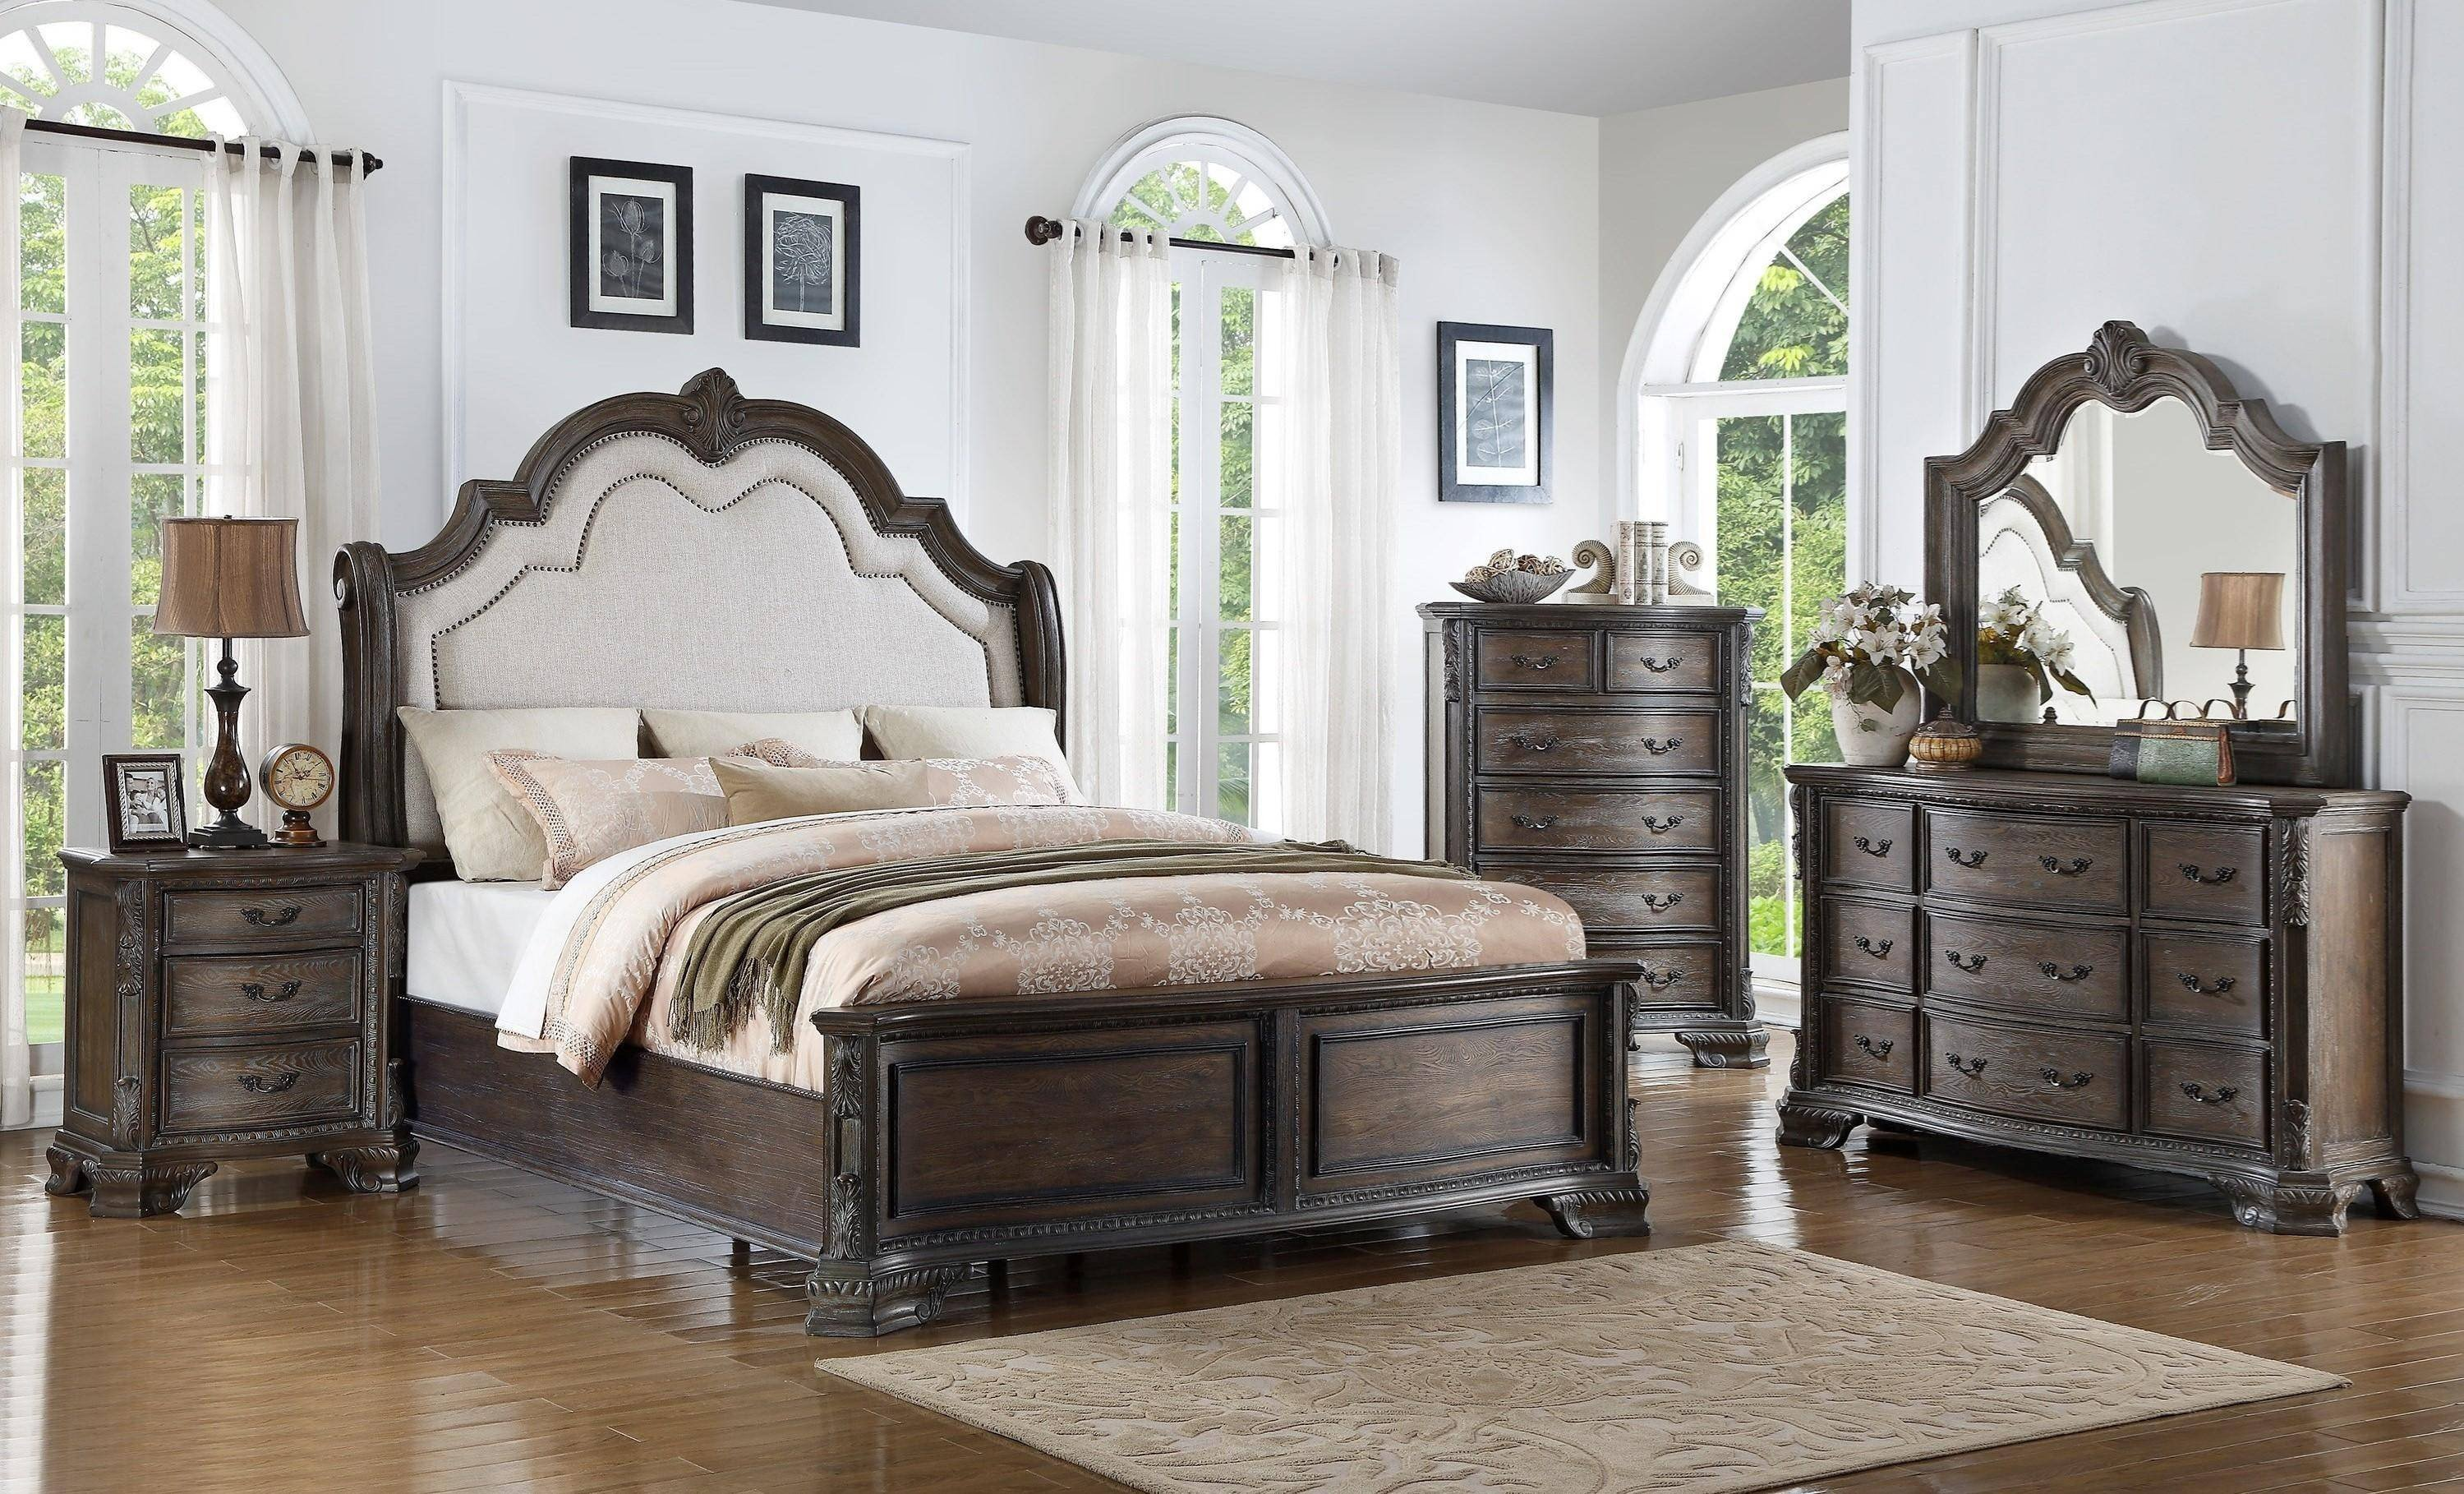 King Bedroom Set with Mattress Beautiful Crown Mark B1120 Sheffield Queen Panel Bed In Gray Fabric